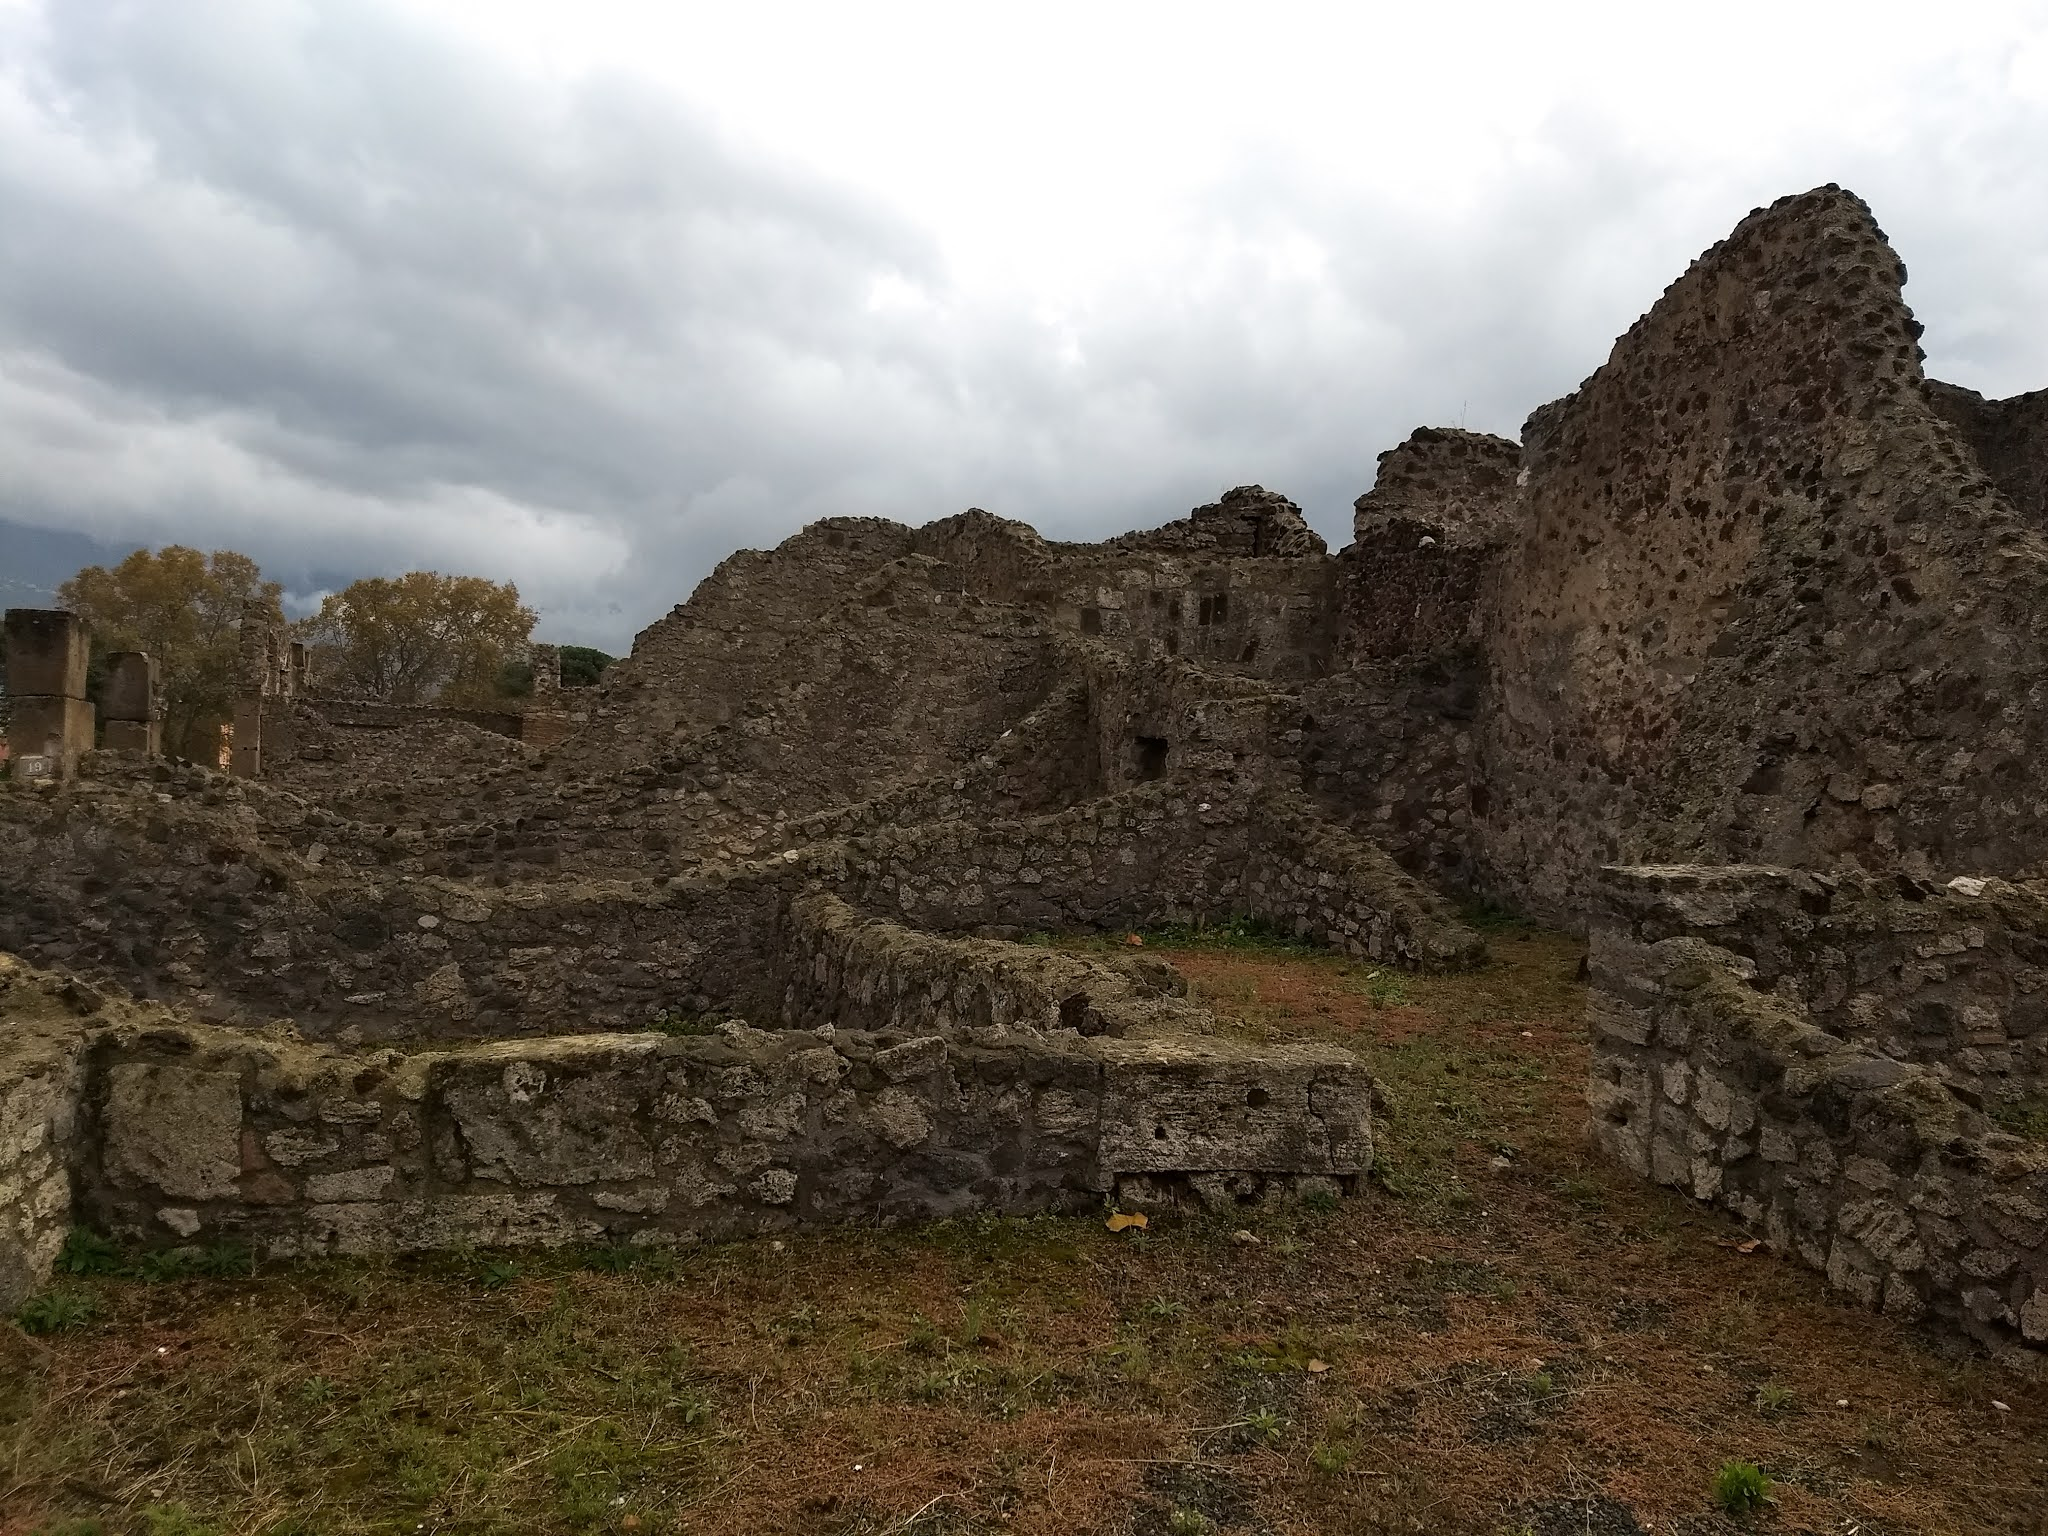 Ancient walls and structures in Pompeii.